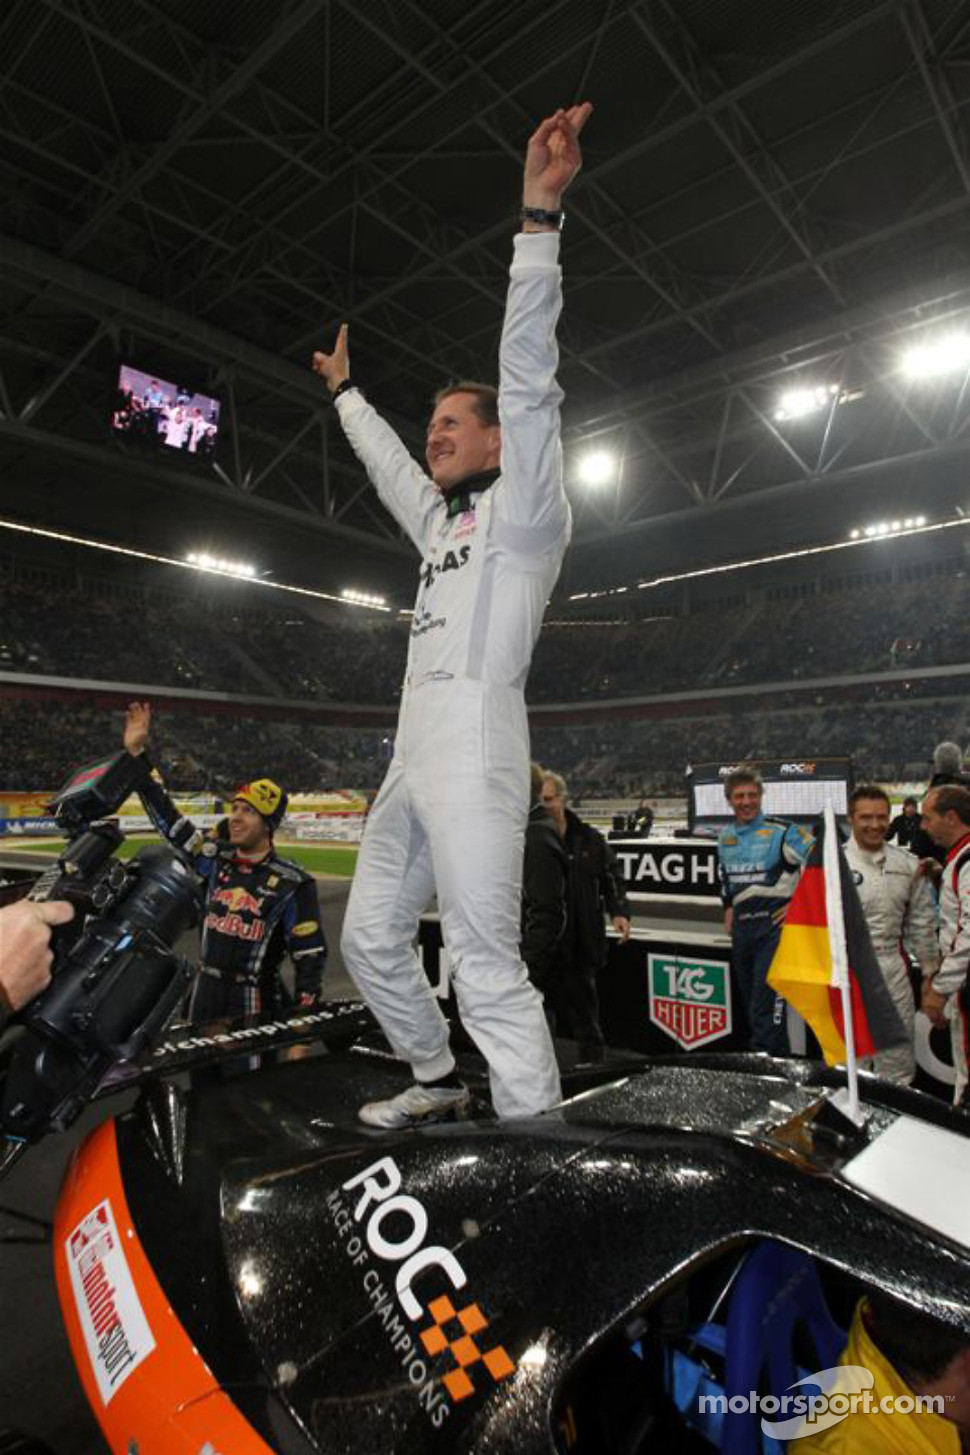 Nations Cup winner Michael Schumacher for Team Germany